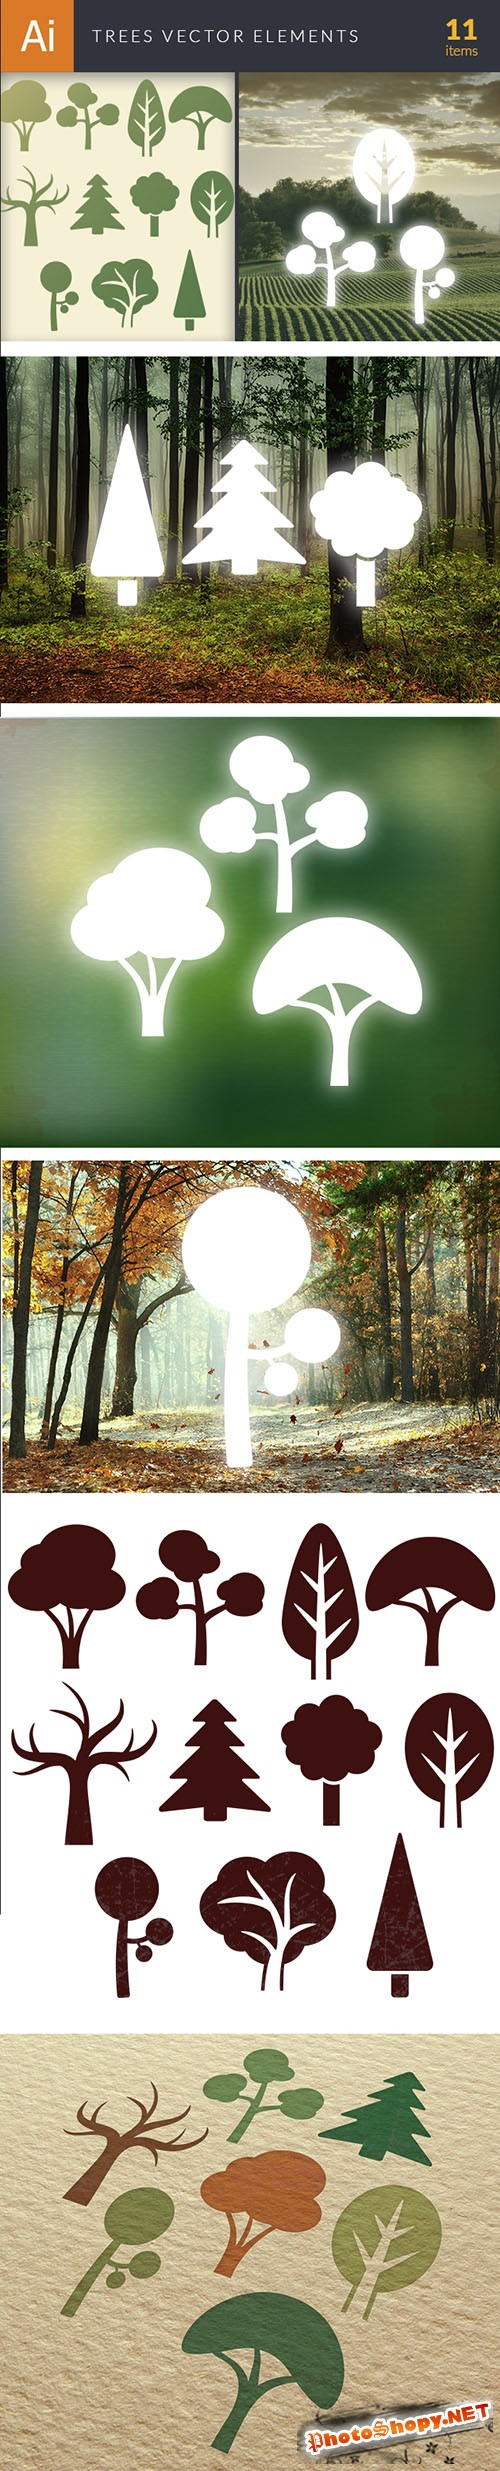 Simple Trees Vector Elements Set 2